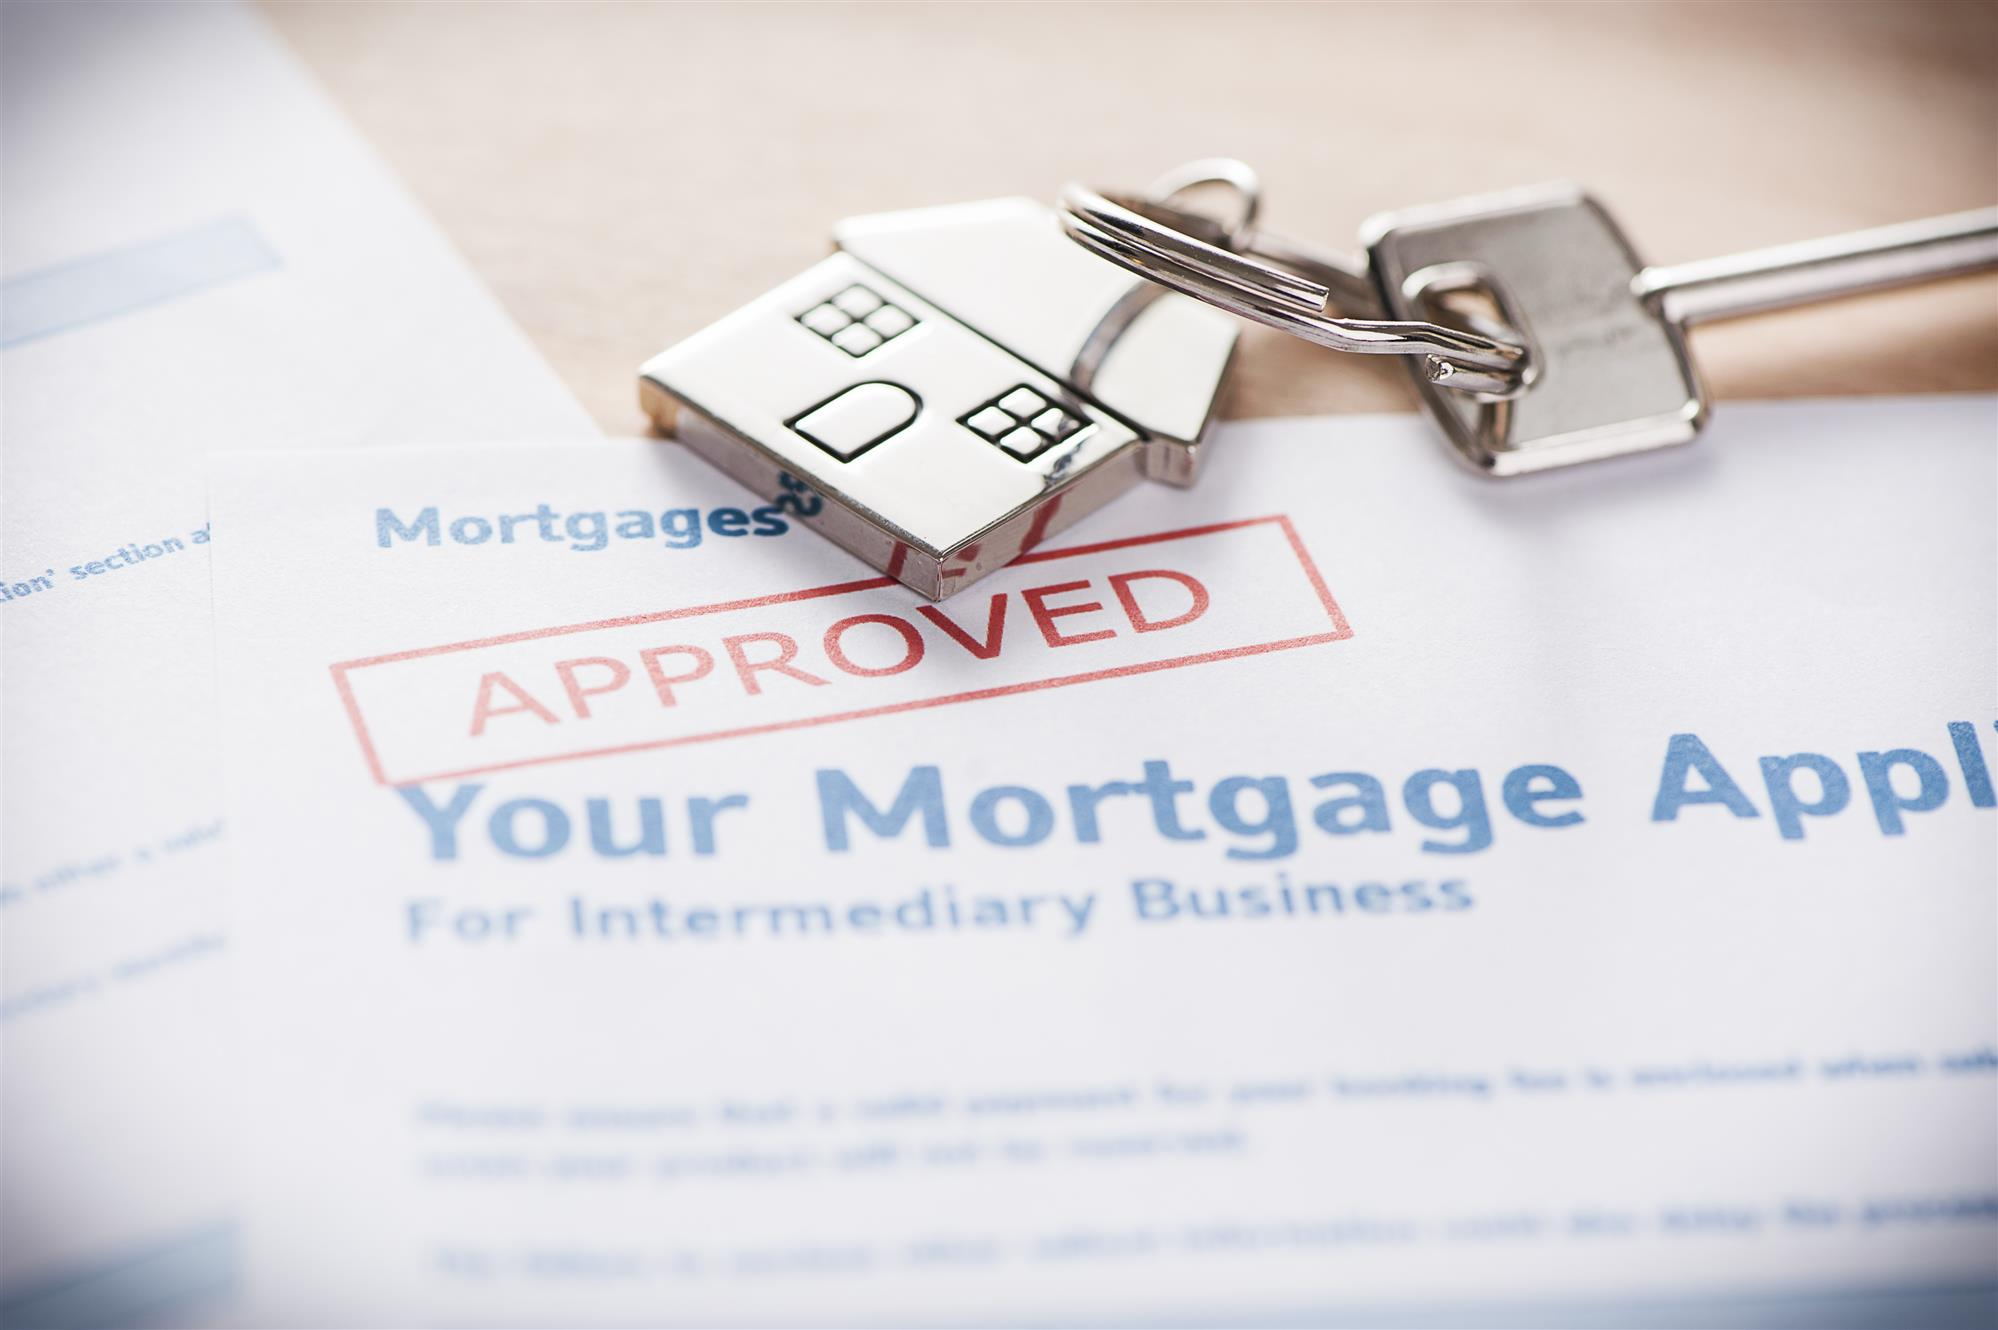 Five Common Home Loan Mortgage Myths Debunked